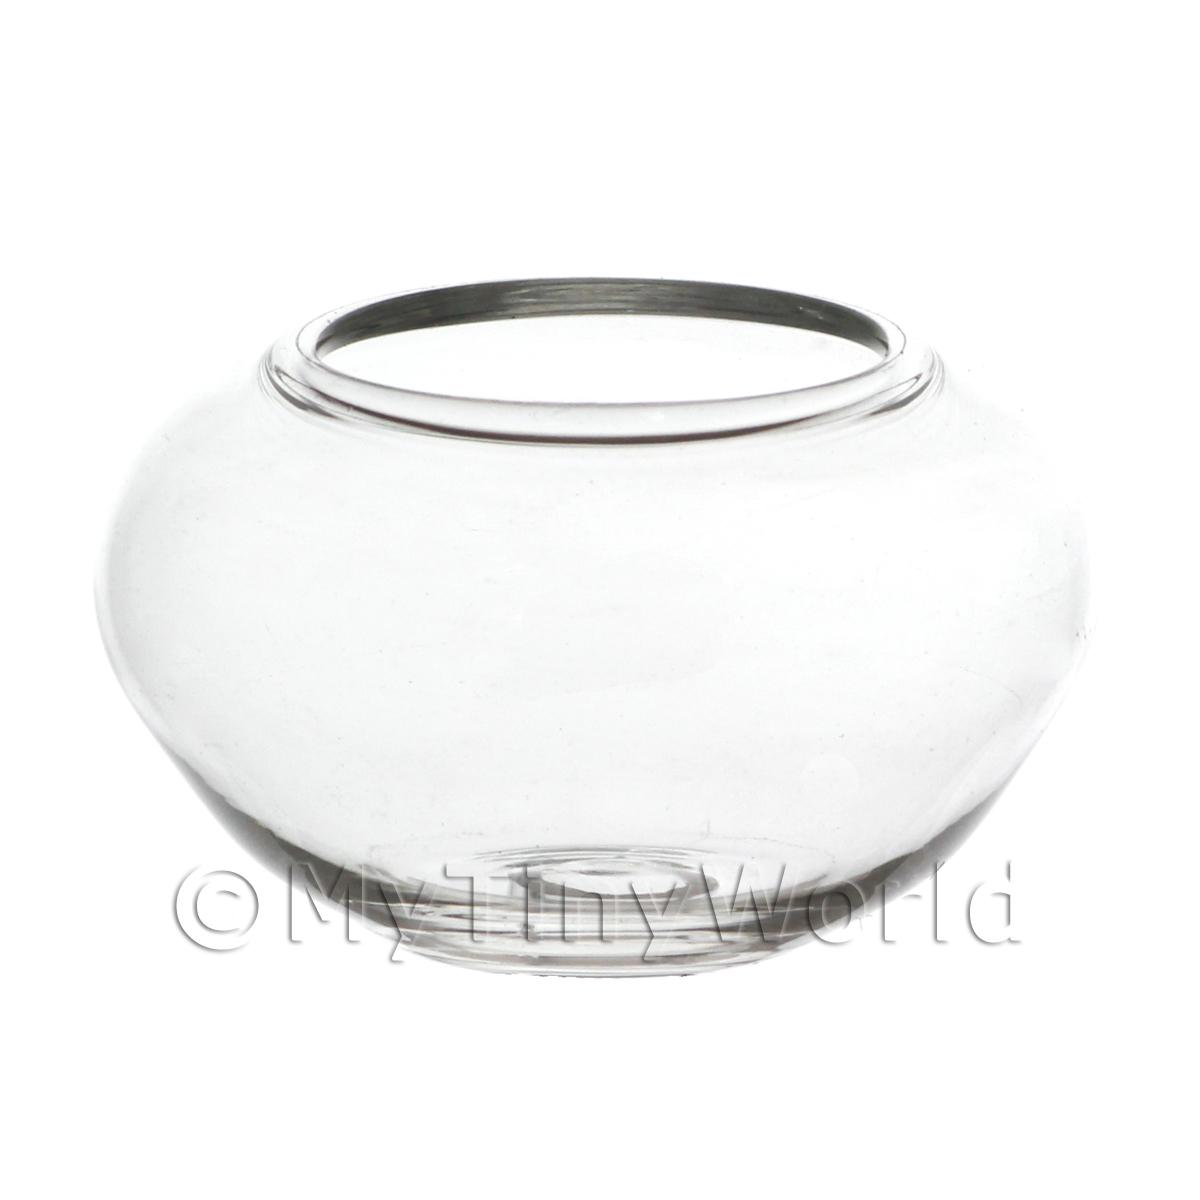 Dolls House Miniature Handmade Large Glass Fish Bowl